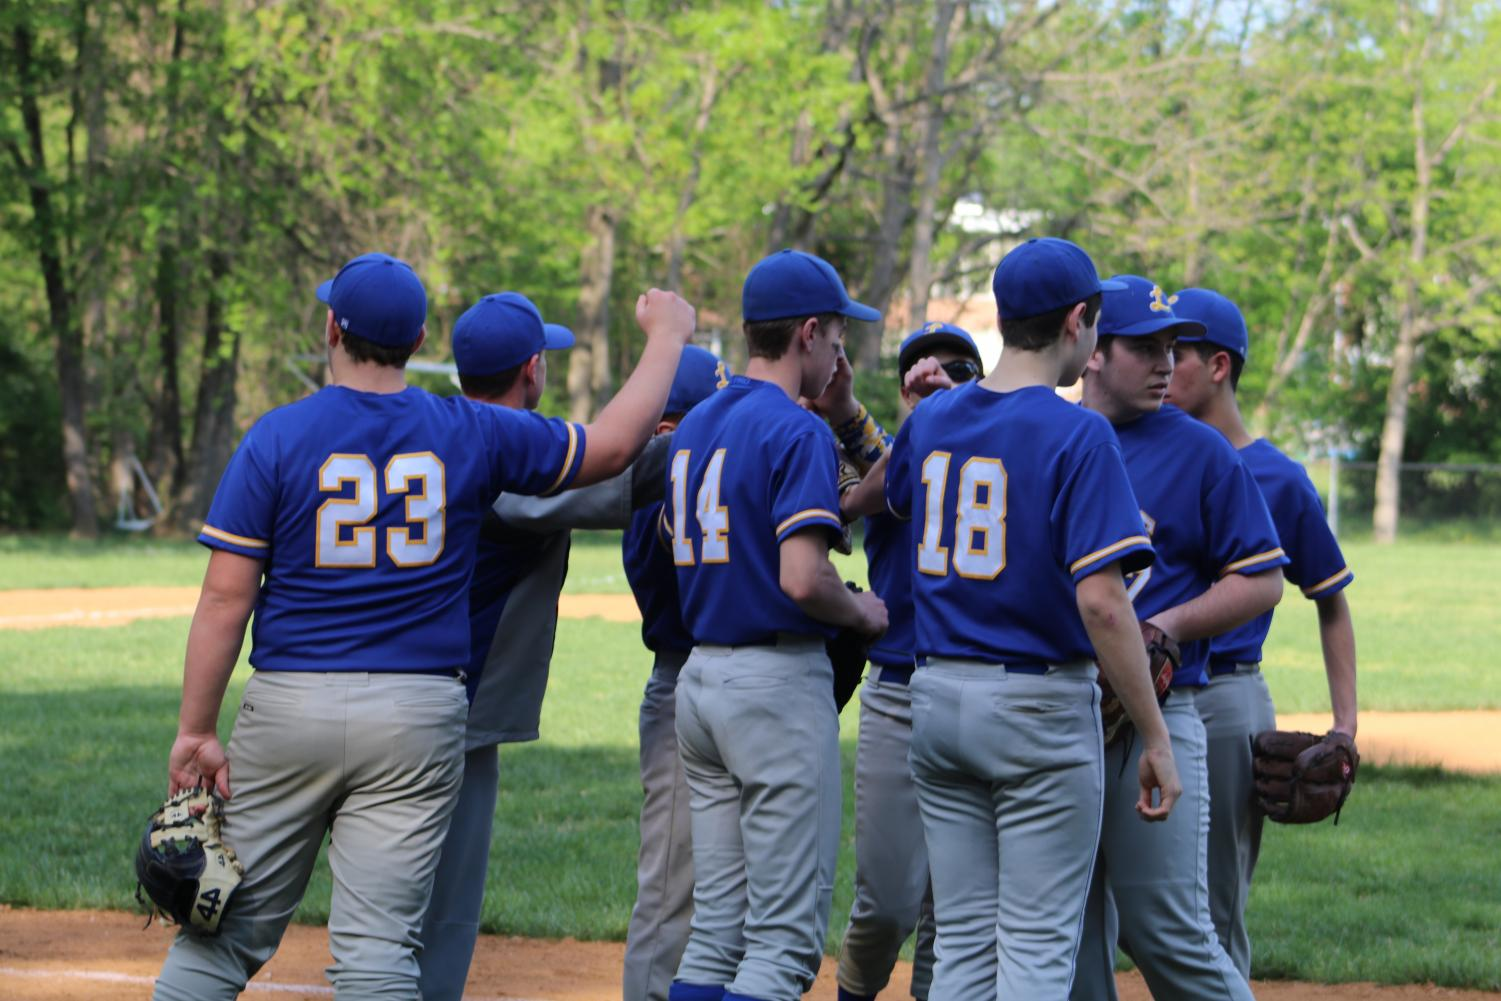 The baseball team gathers during a time-out during a game.